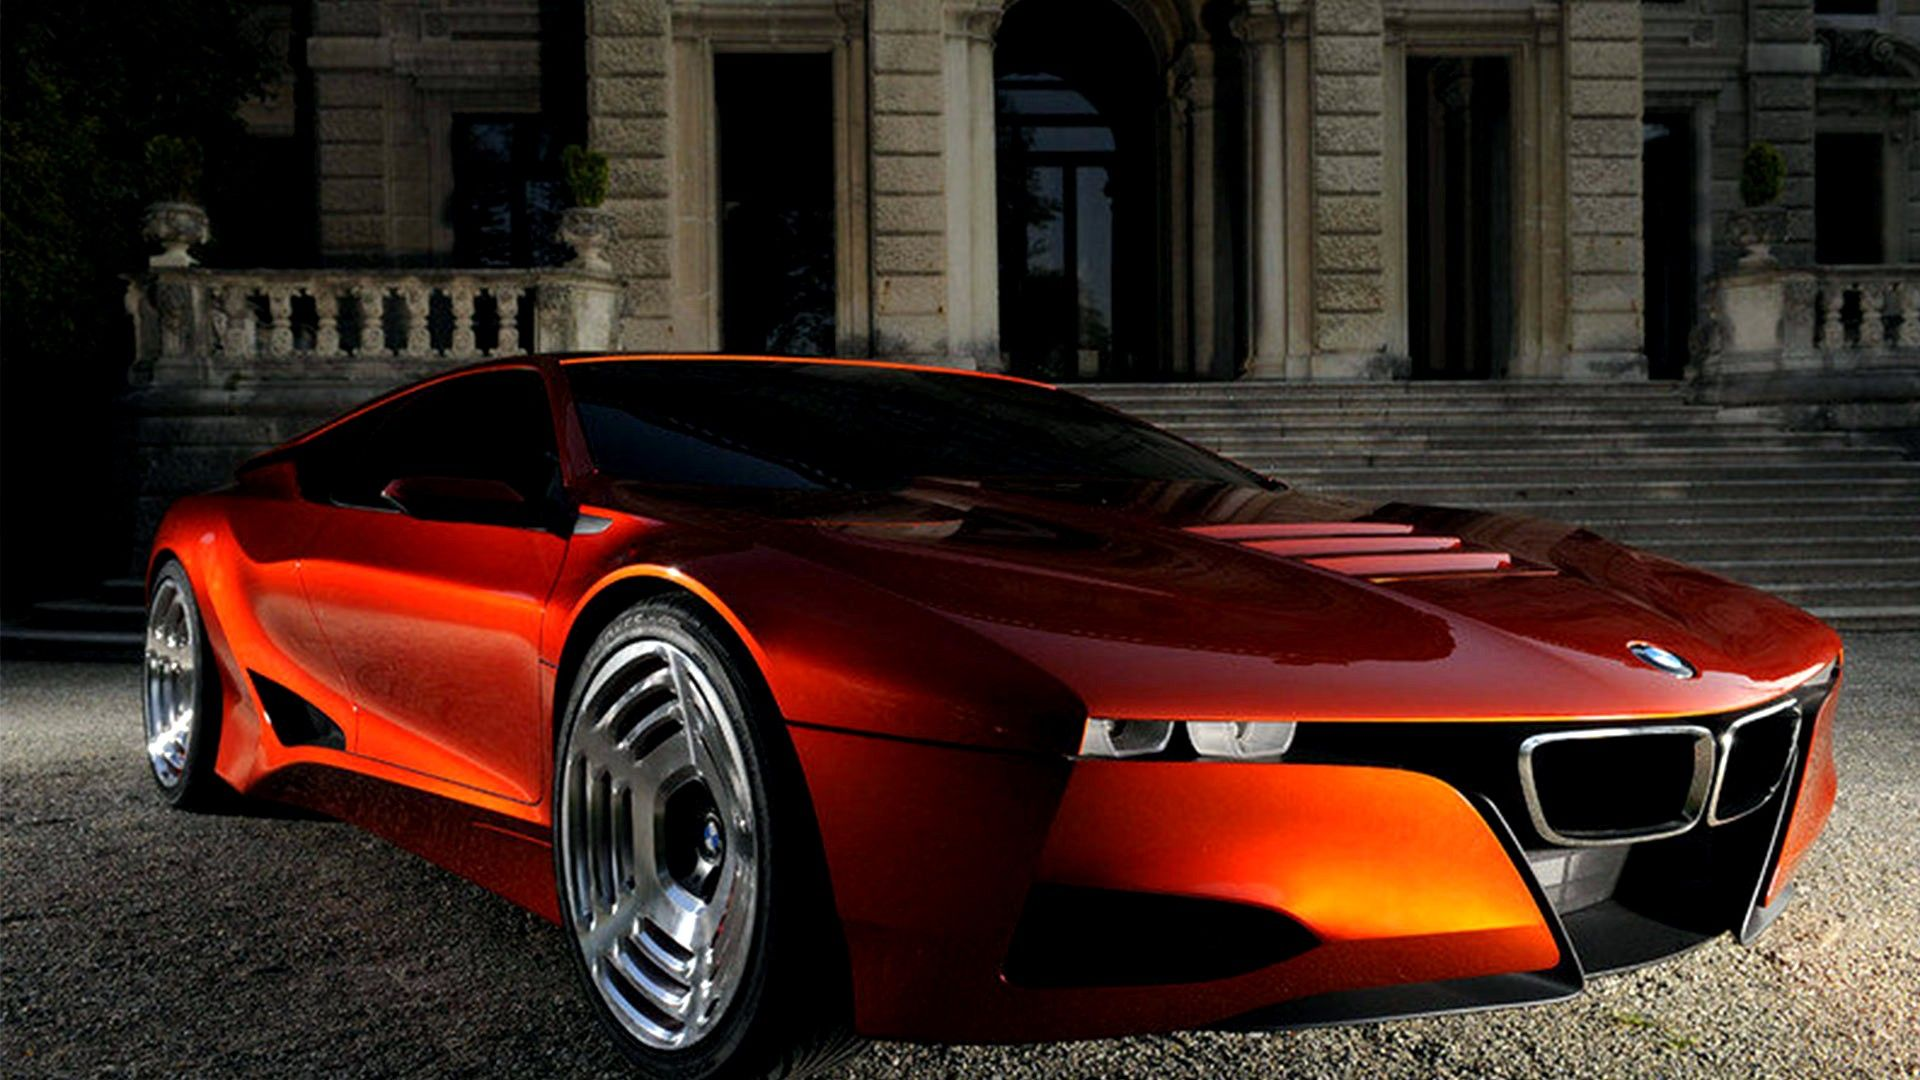 New bmw car finally he chooses bmw over his favorite scorpio car - Find This Pin And More On The Best Of All New Car Photos Amazing Car Images 2016 Bmw